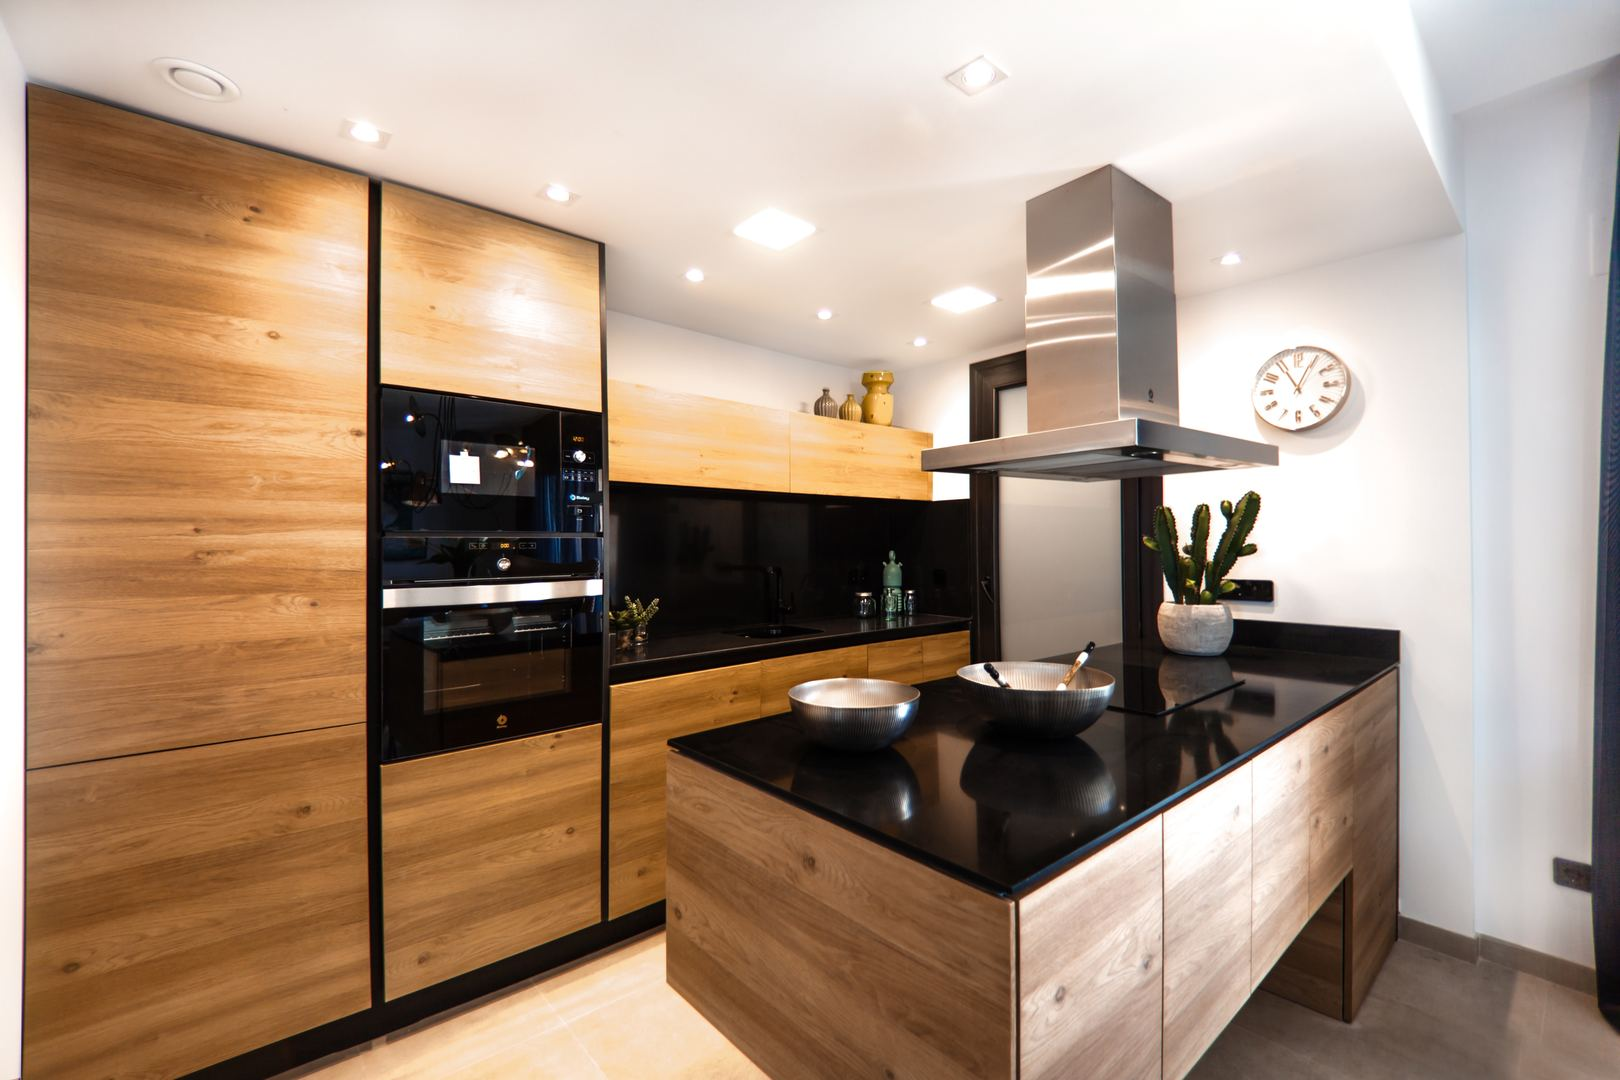 Kitchen Plumbing and Renovations Auckland